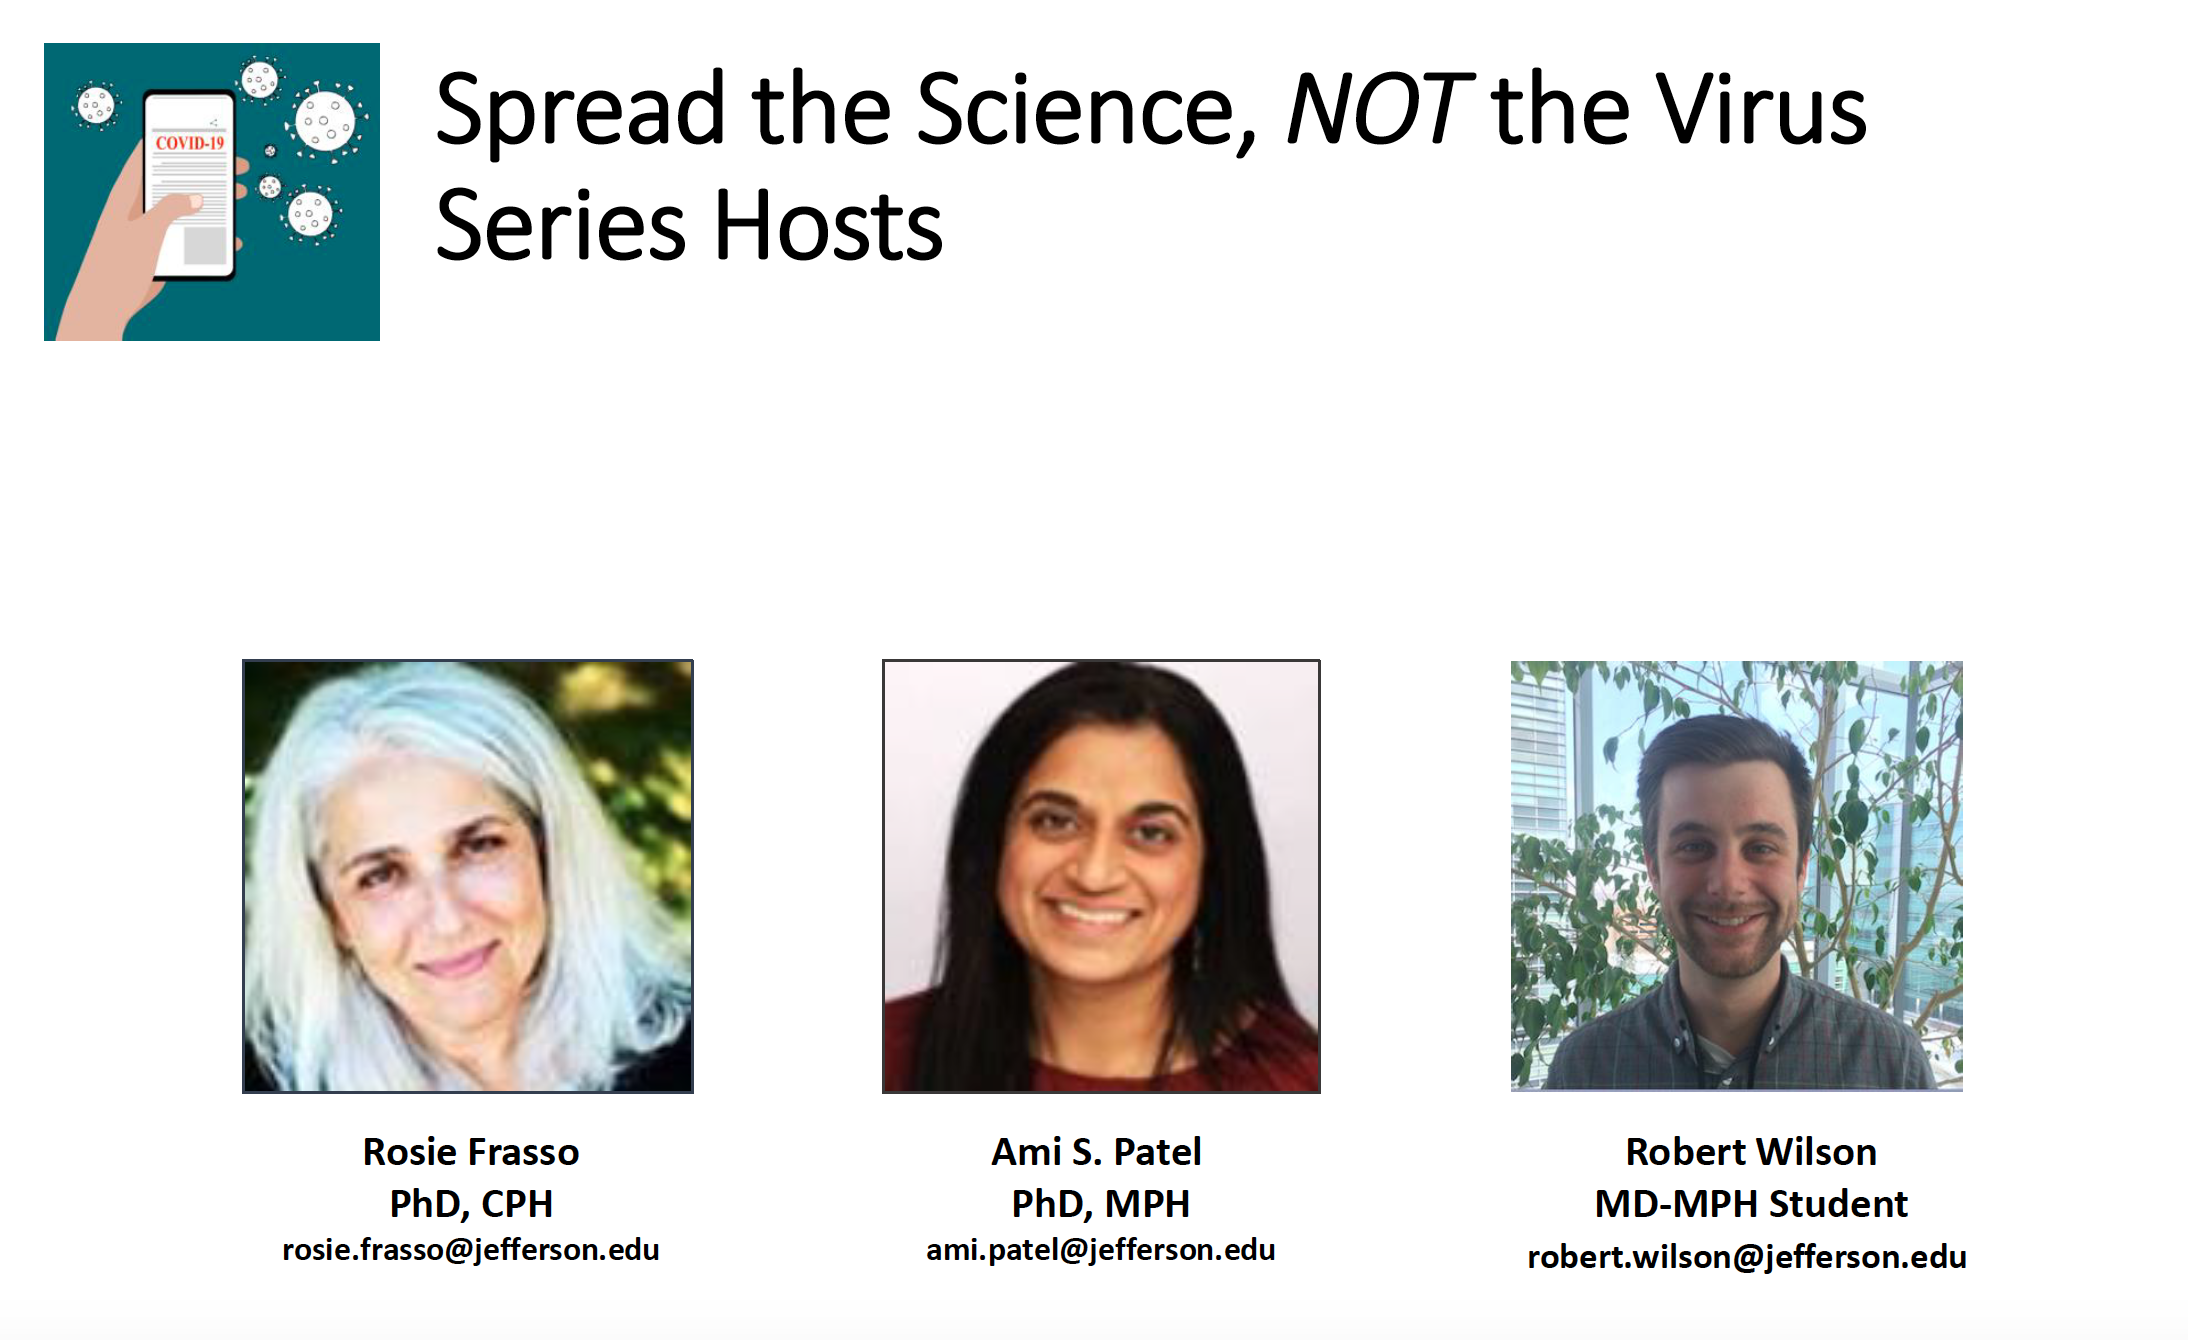 COVID-19: Spread the Science, not the Virus Seminar Series